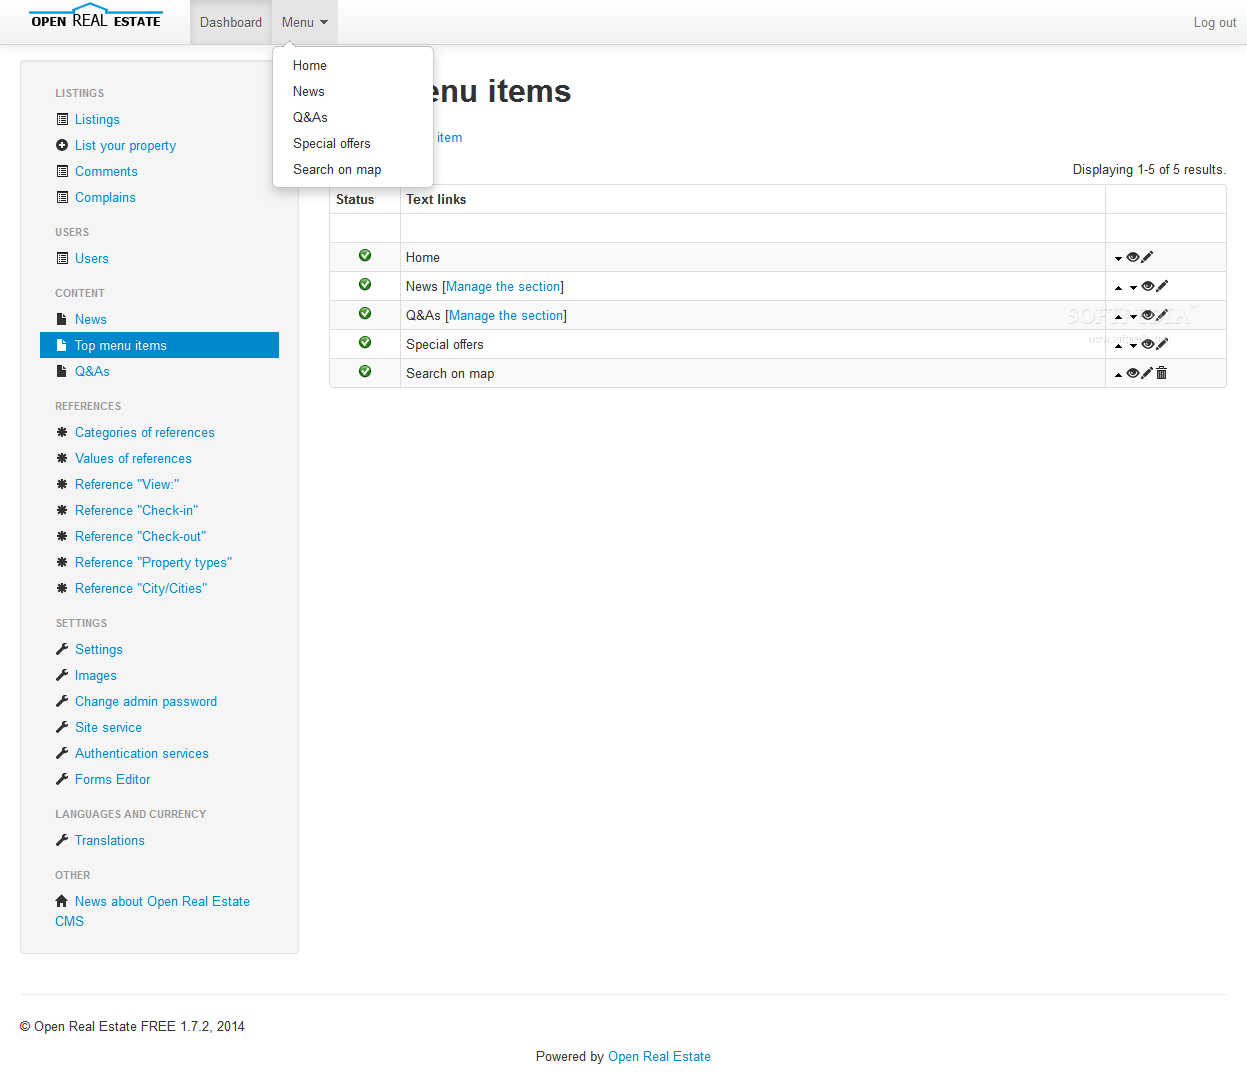 Open Real Estate - The admin menu is also editable inside the Open Real Estate backend